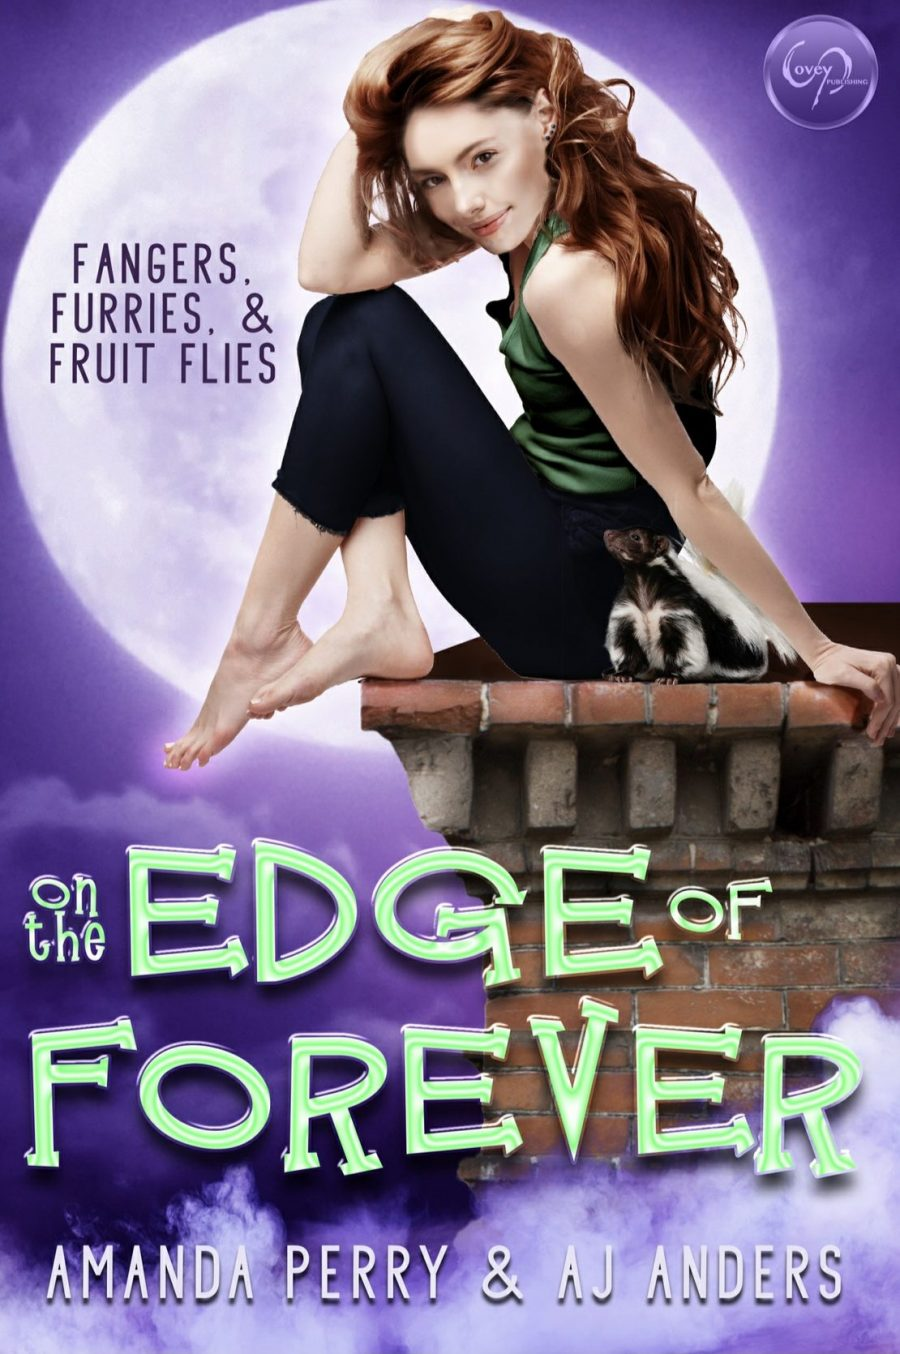 On the Edge of Forever by Amanda Perry – A Book Review